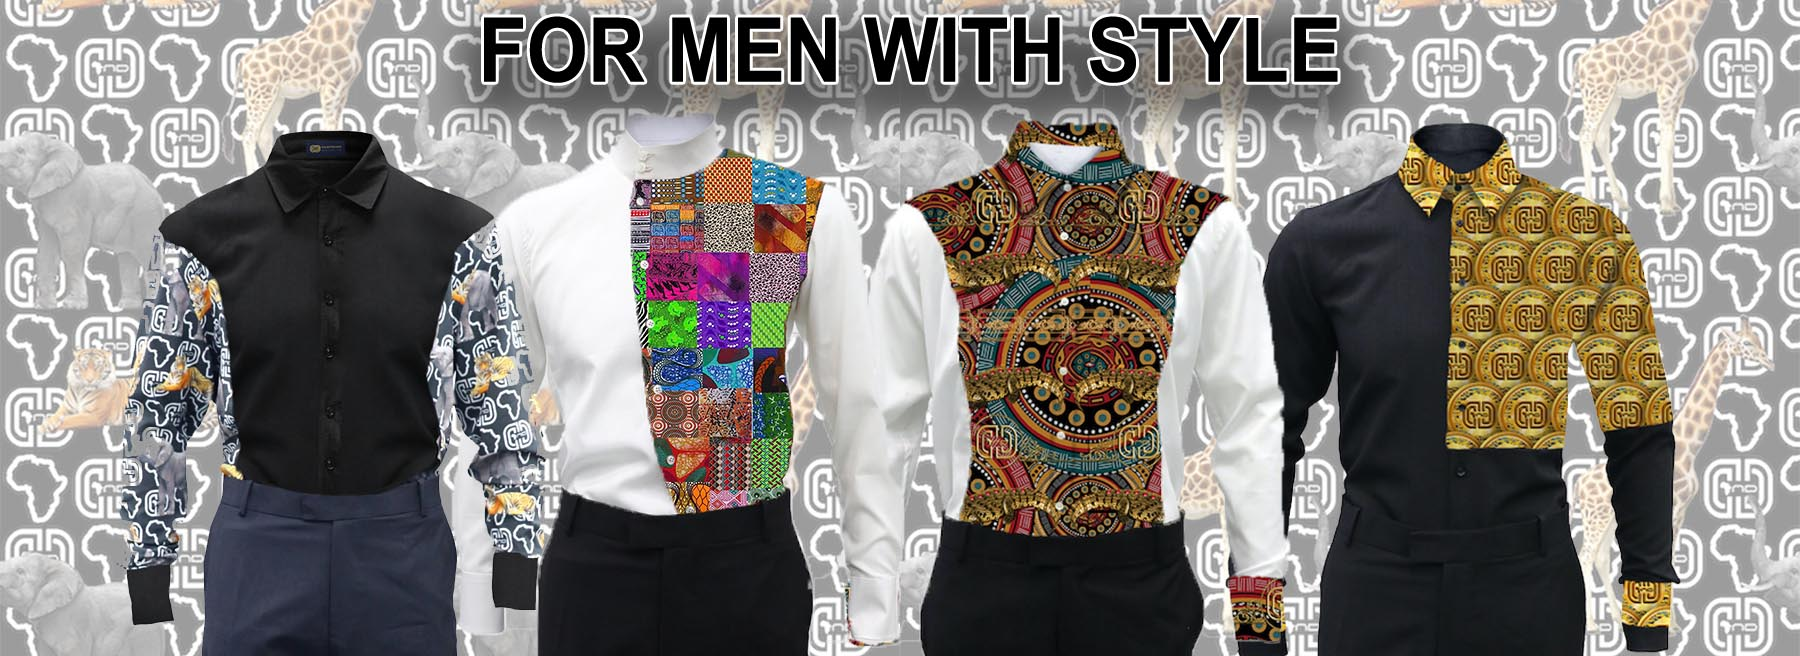 Shirts for Casual and Formal Wear   Men's African Shirts   OR